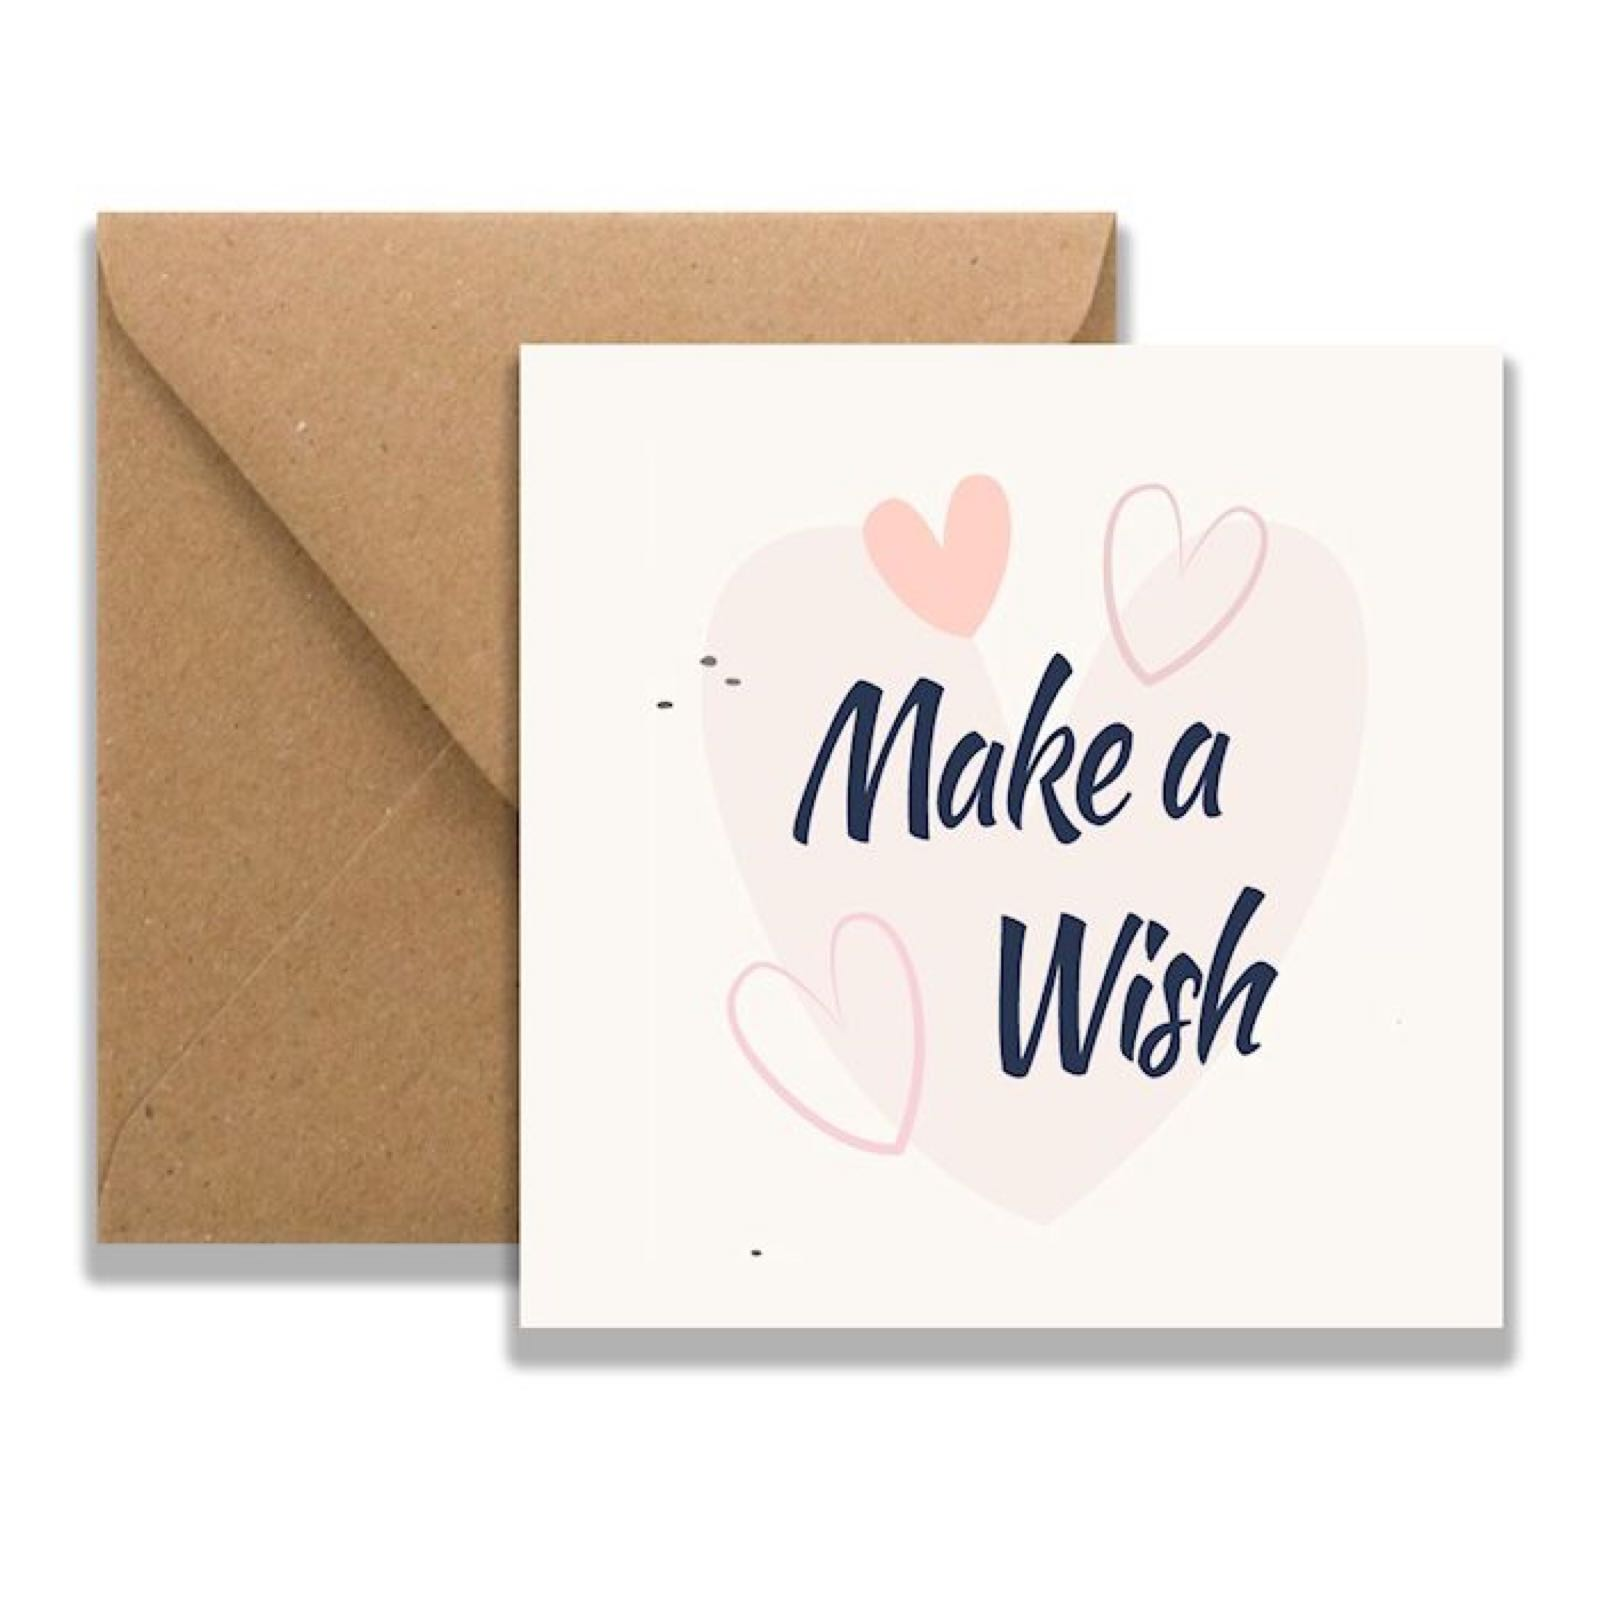 'Make a Wish Hearts' Wish Strings Card (Was £1.85)